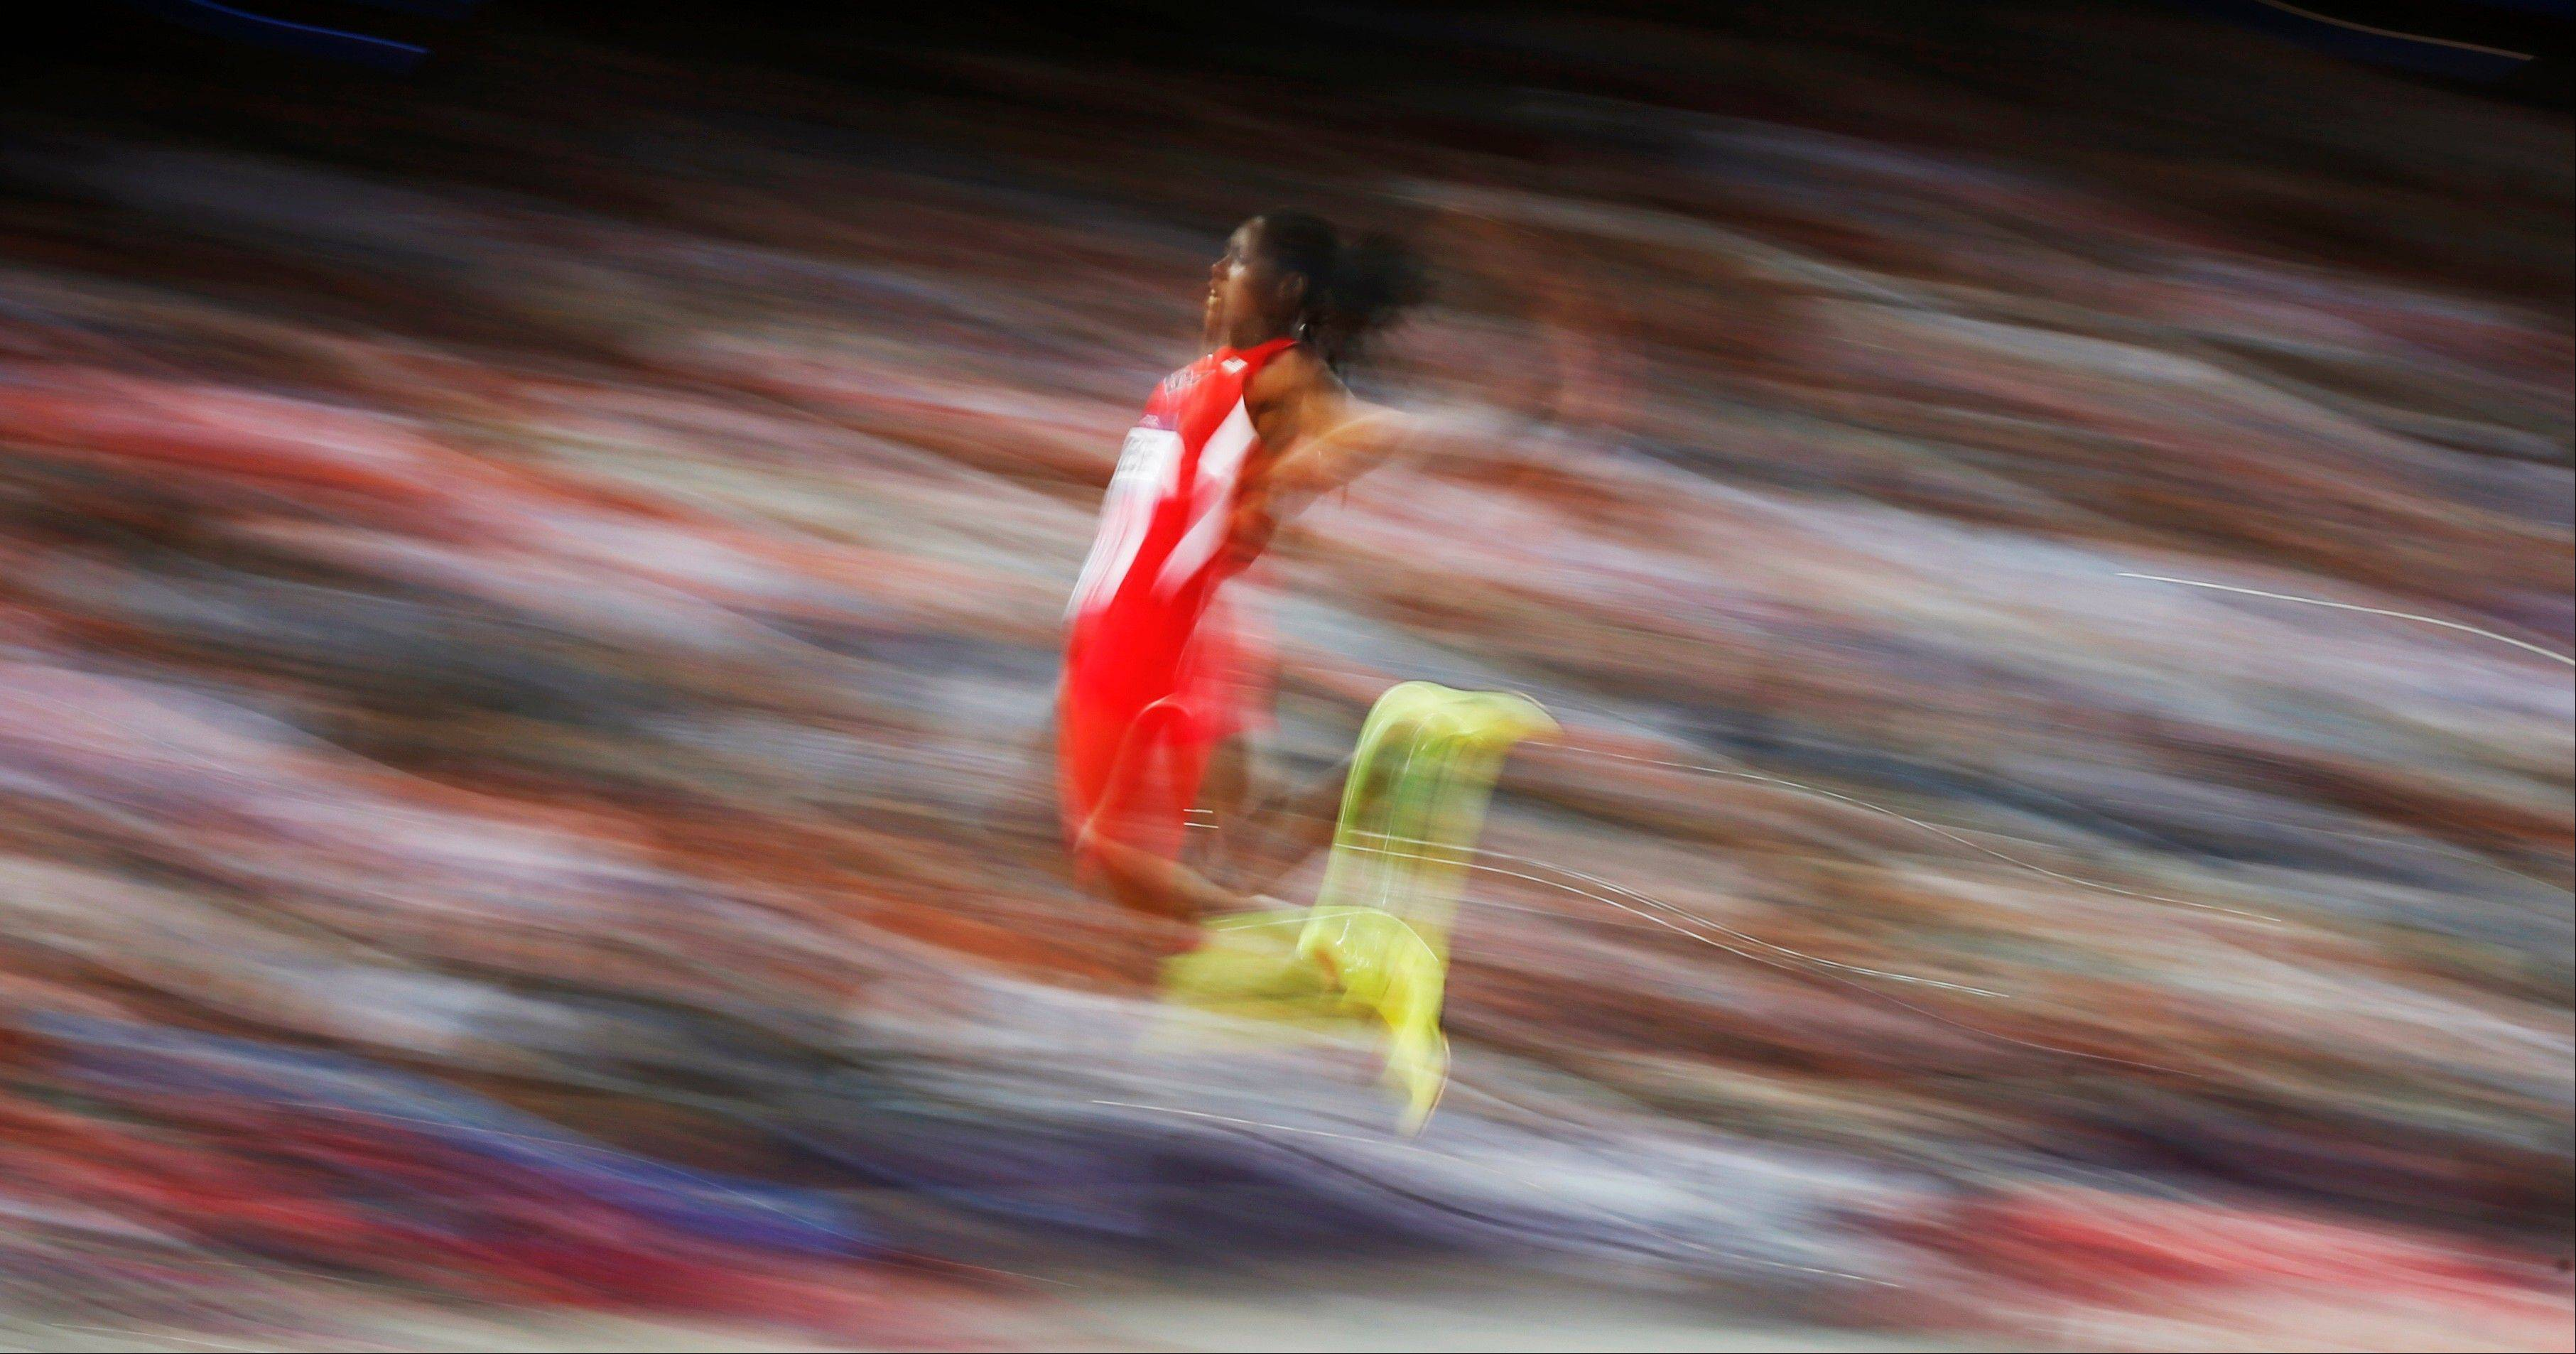 United States' Brittney Reese competes in the women's long jump final to win gold during the athletics in the Olympic Stadium at the 2012 Summer Olympics, London, Wednesday, Aug. 8, 2012.